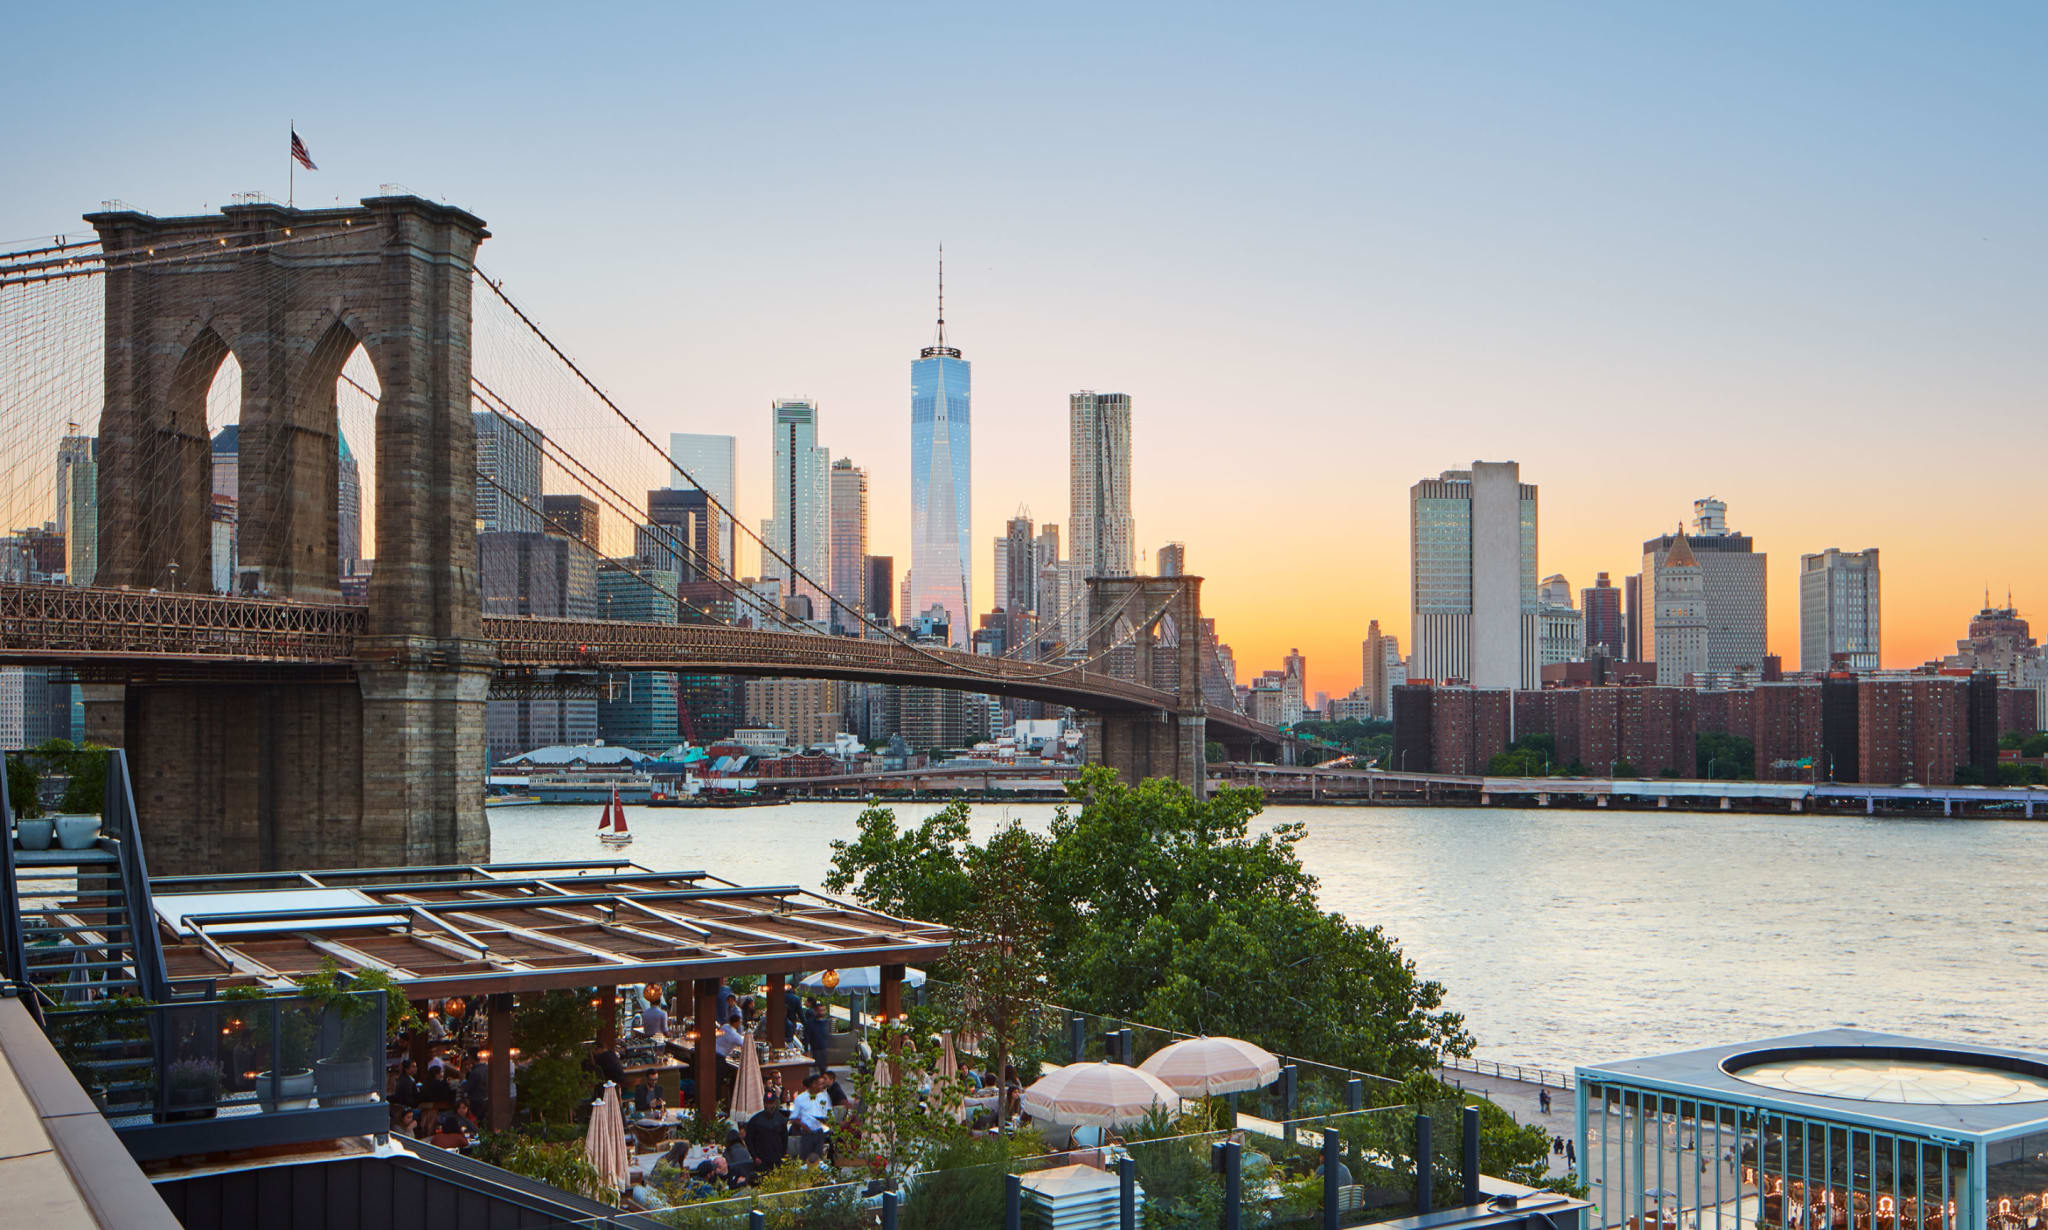 A restaurant's terrace overlooks the East River, Brooklyn Bridge and downtown Manhattan at sunset.